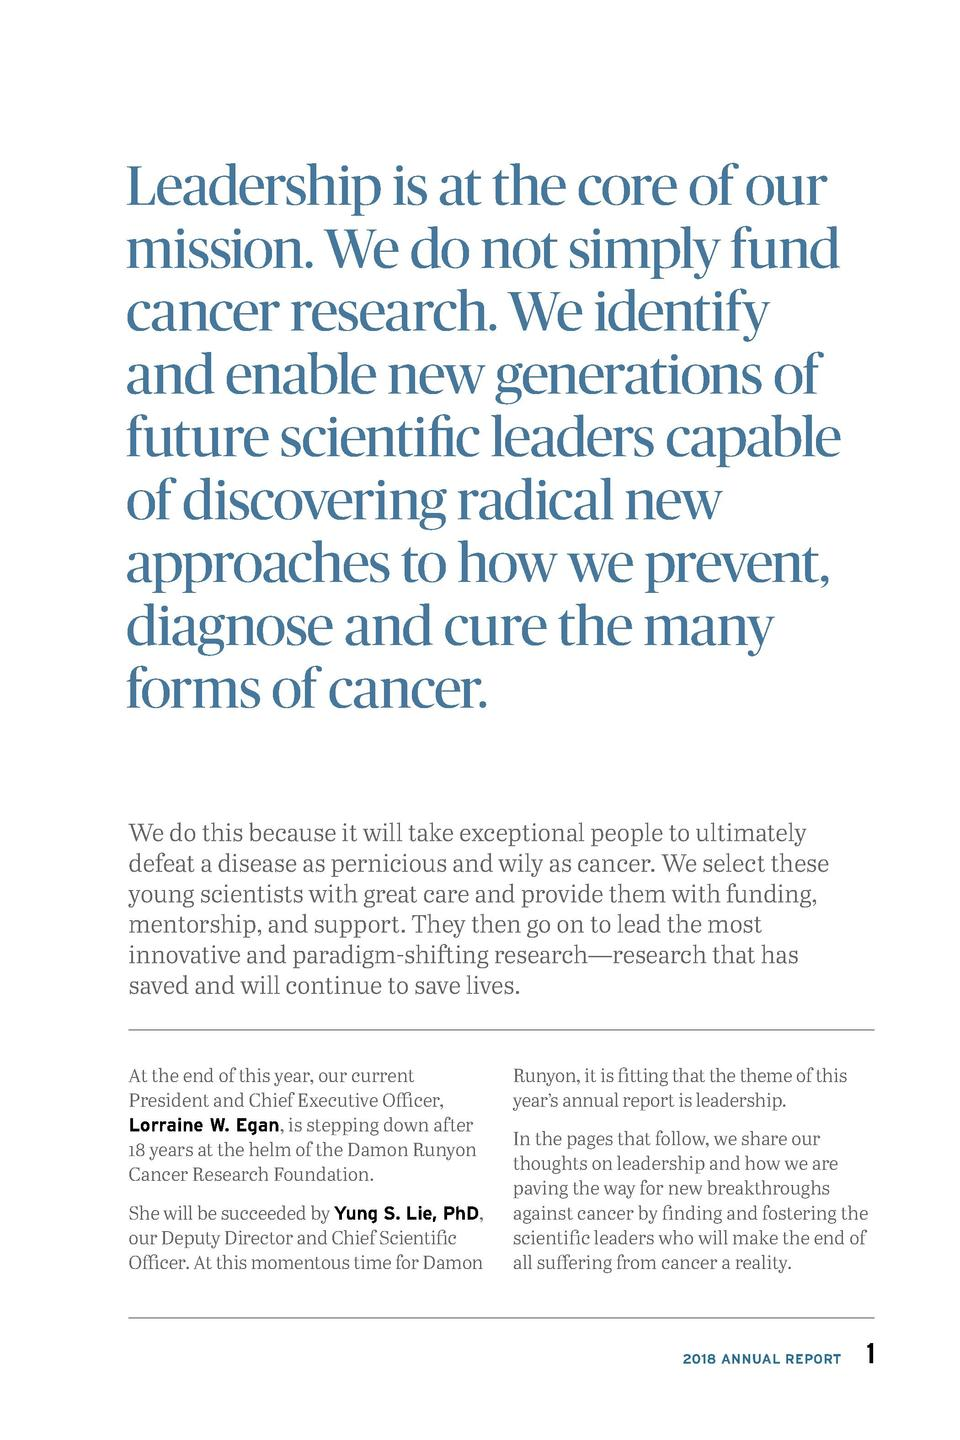 Leadership is at the core of our mission. We do not simply fund cancer research. We identify and enable new generations of...